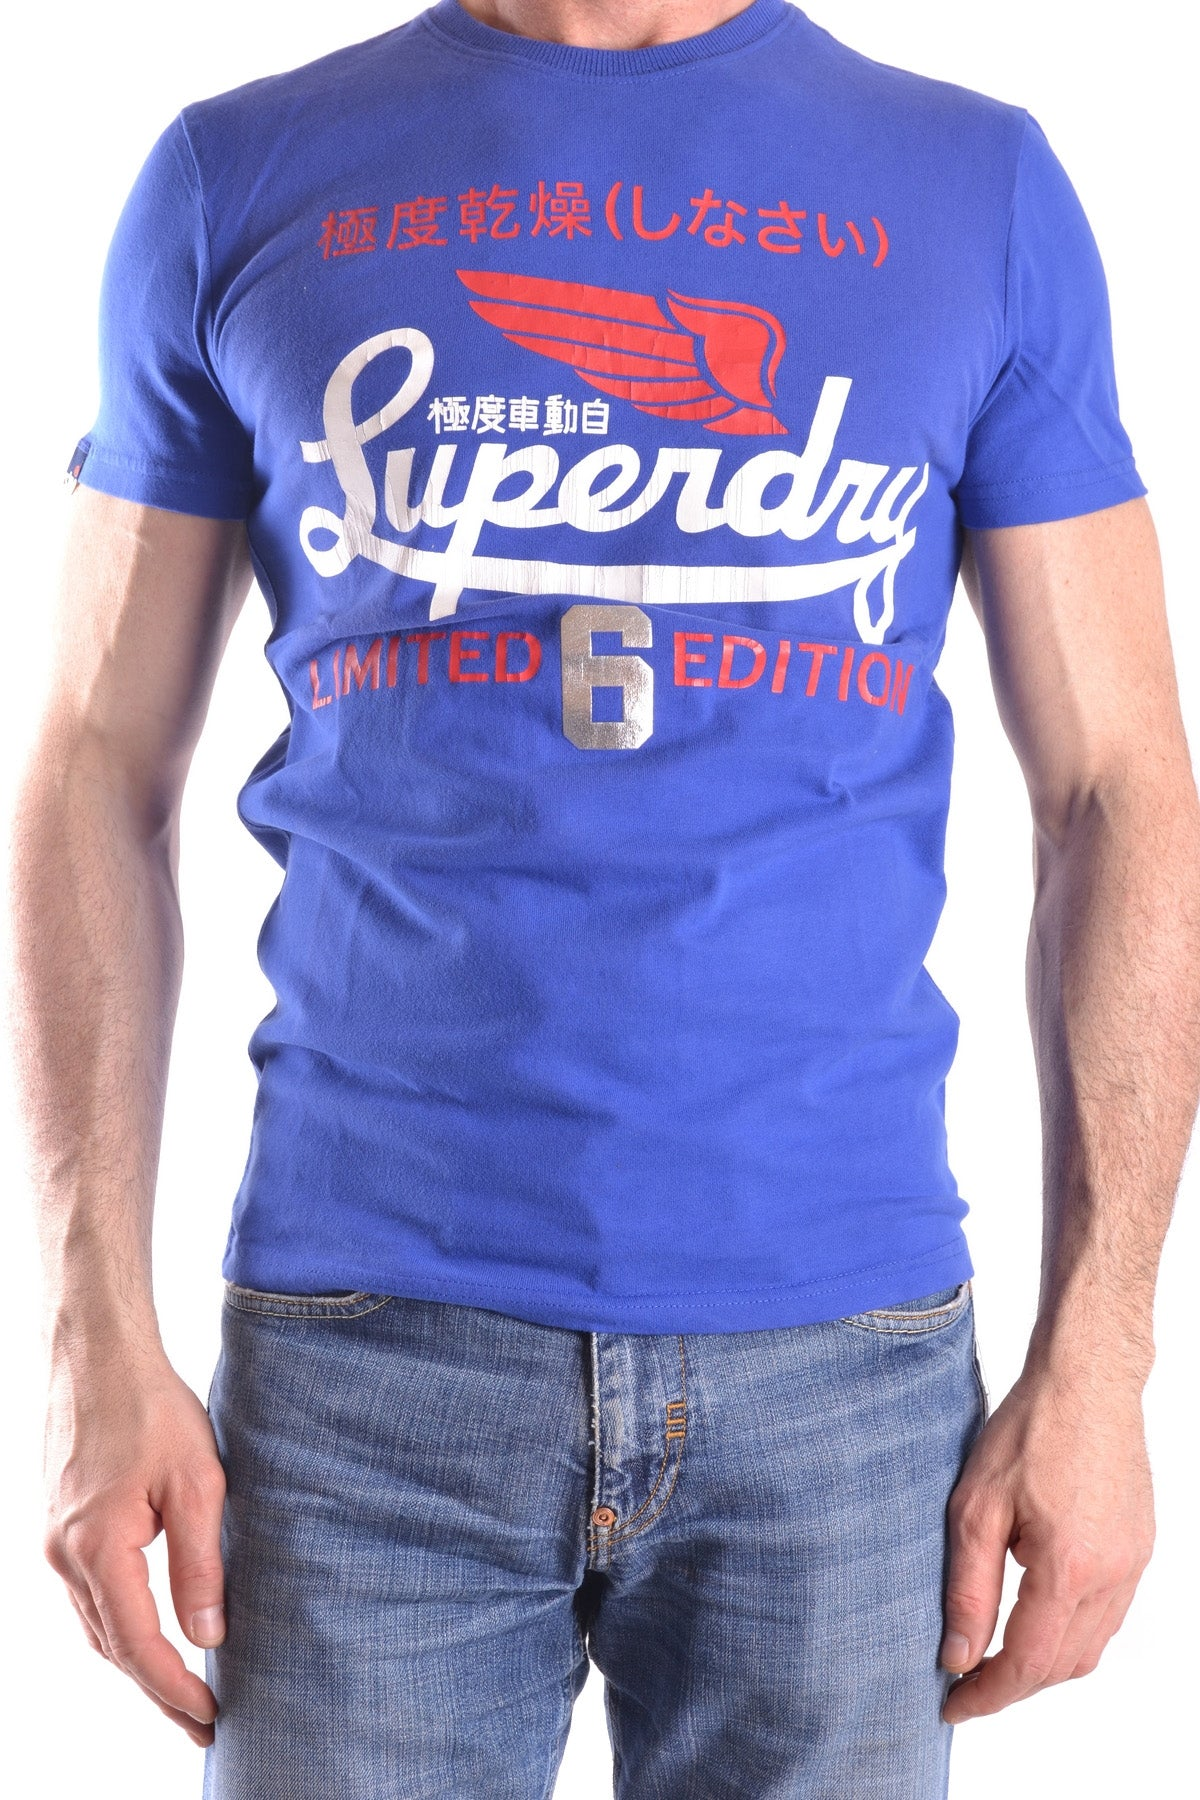 T-Shirt Superdry-Men's Fashion - Men's Clothing - Tops & Tees - T-Shirts-S-Product Details Year: 2017Composition: Cotton 100%Size: IntGender: ManMade In: TurcheySeason: Spring / SummerMain Color: BlueClothing Type: T-ShirtTerms: New With Label-Keyomi-Sook